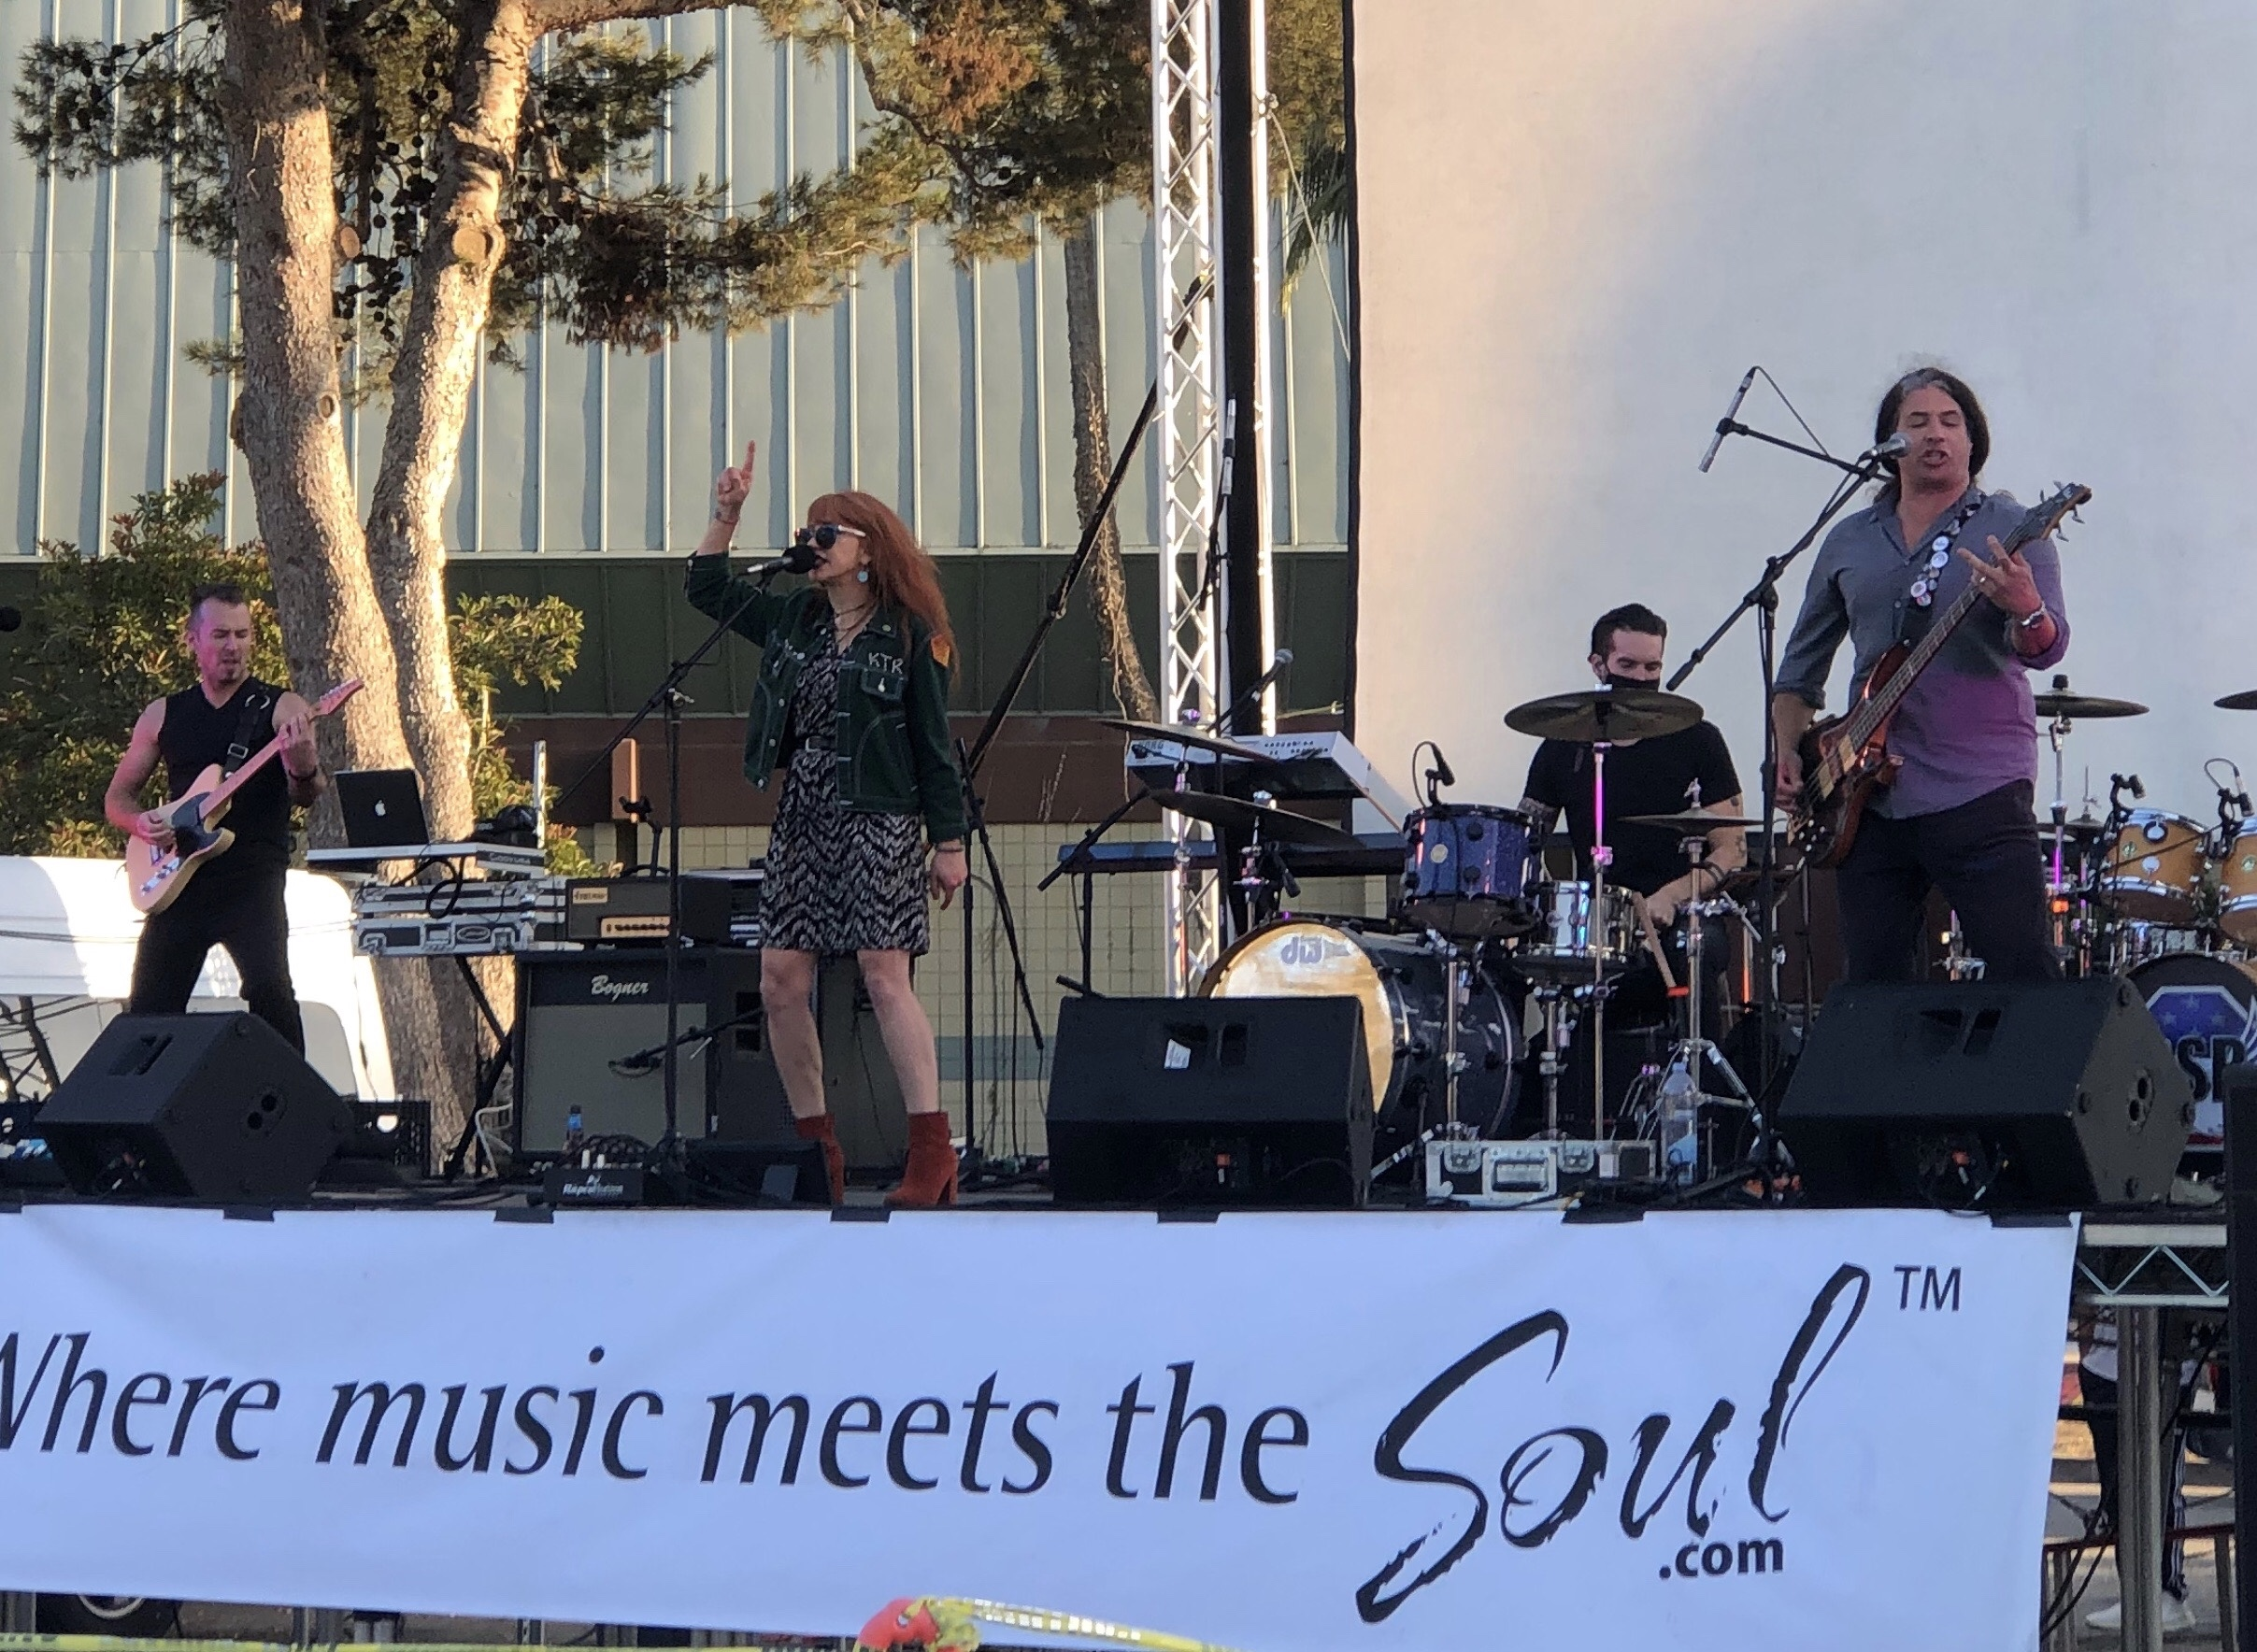 """Concerts In Cars"" series by The Canyon at The Oxnard Performing Arts Center, Oxnard, CA ( 9-26-2020) photo by Gina Spiropoulos"